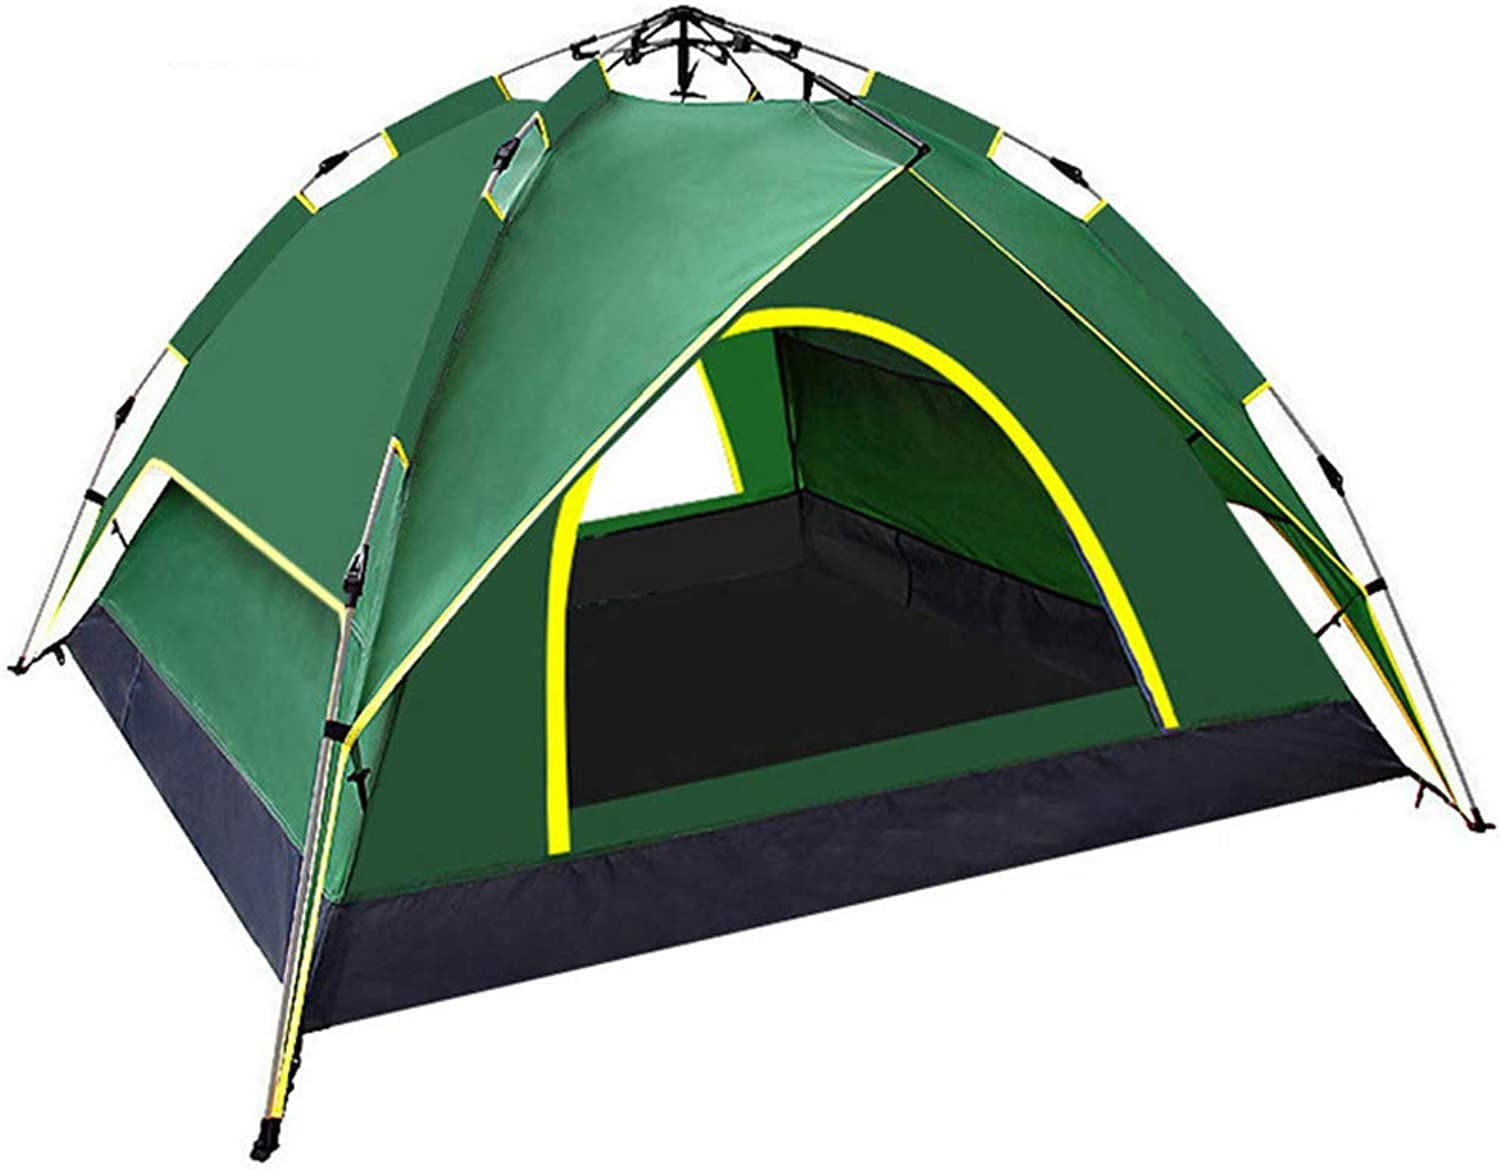 Tent,34 Person Camping Tent Dual Layer Waterproof Pop Up Open Anti UV Tourist Tents for Outdoor Hiking Beach Travel Tienda,A